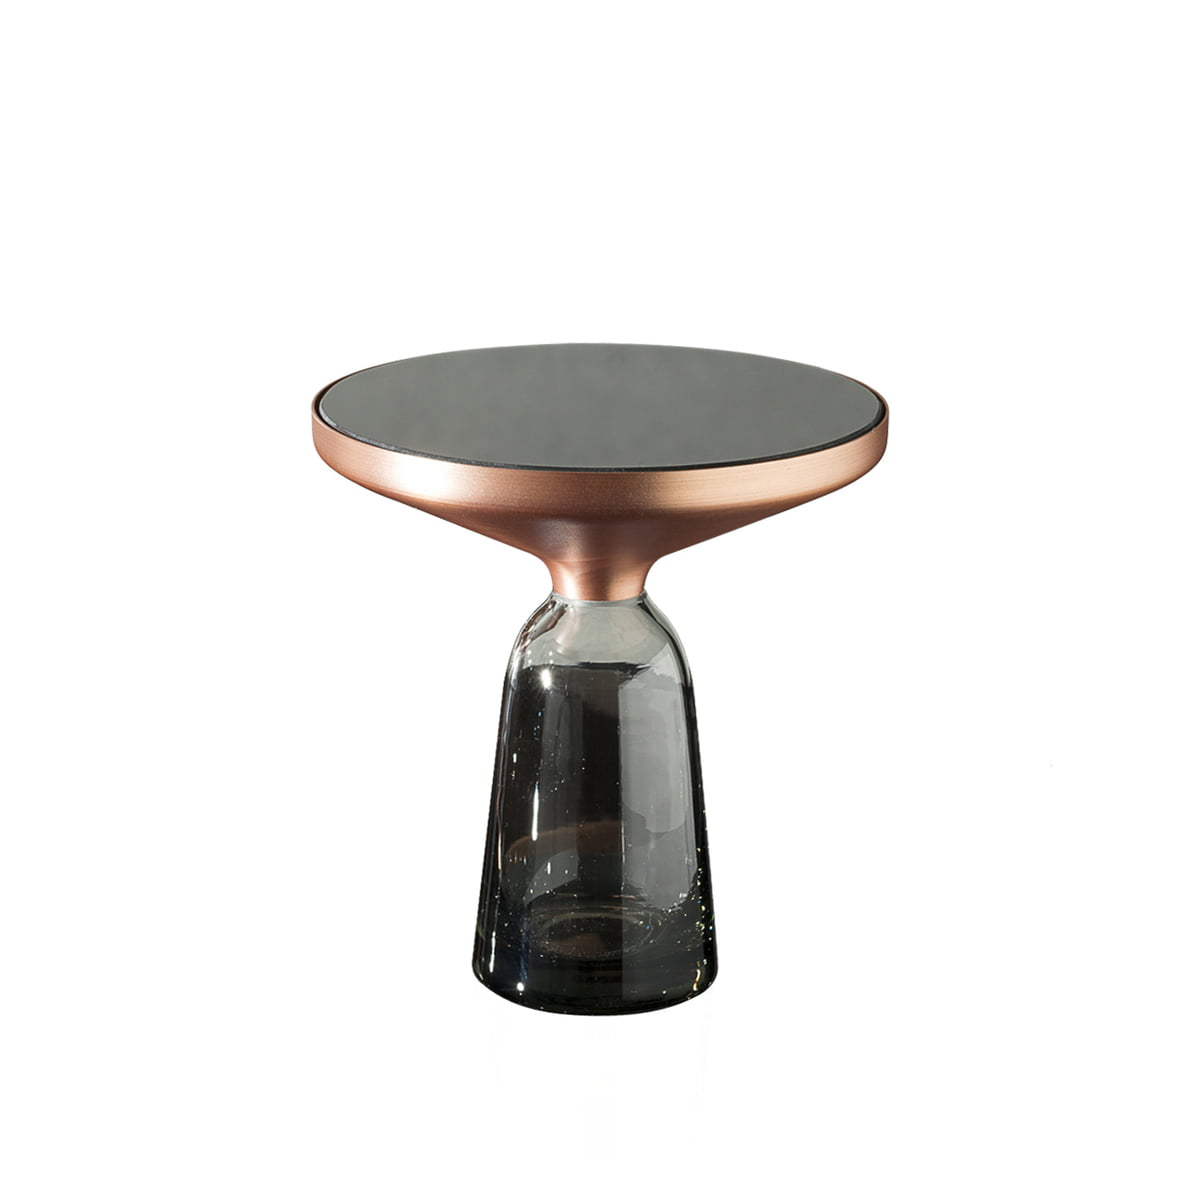 bell side table miniature by classicon. Black Bedroom Furniture Sets. Home Design Ideas